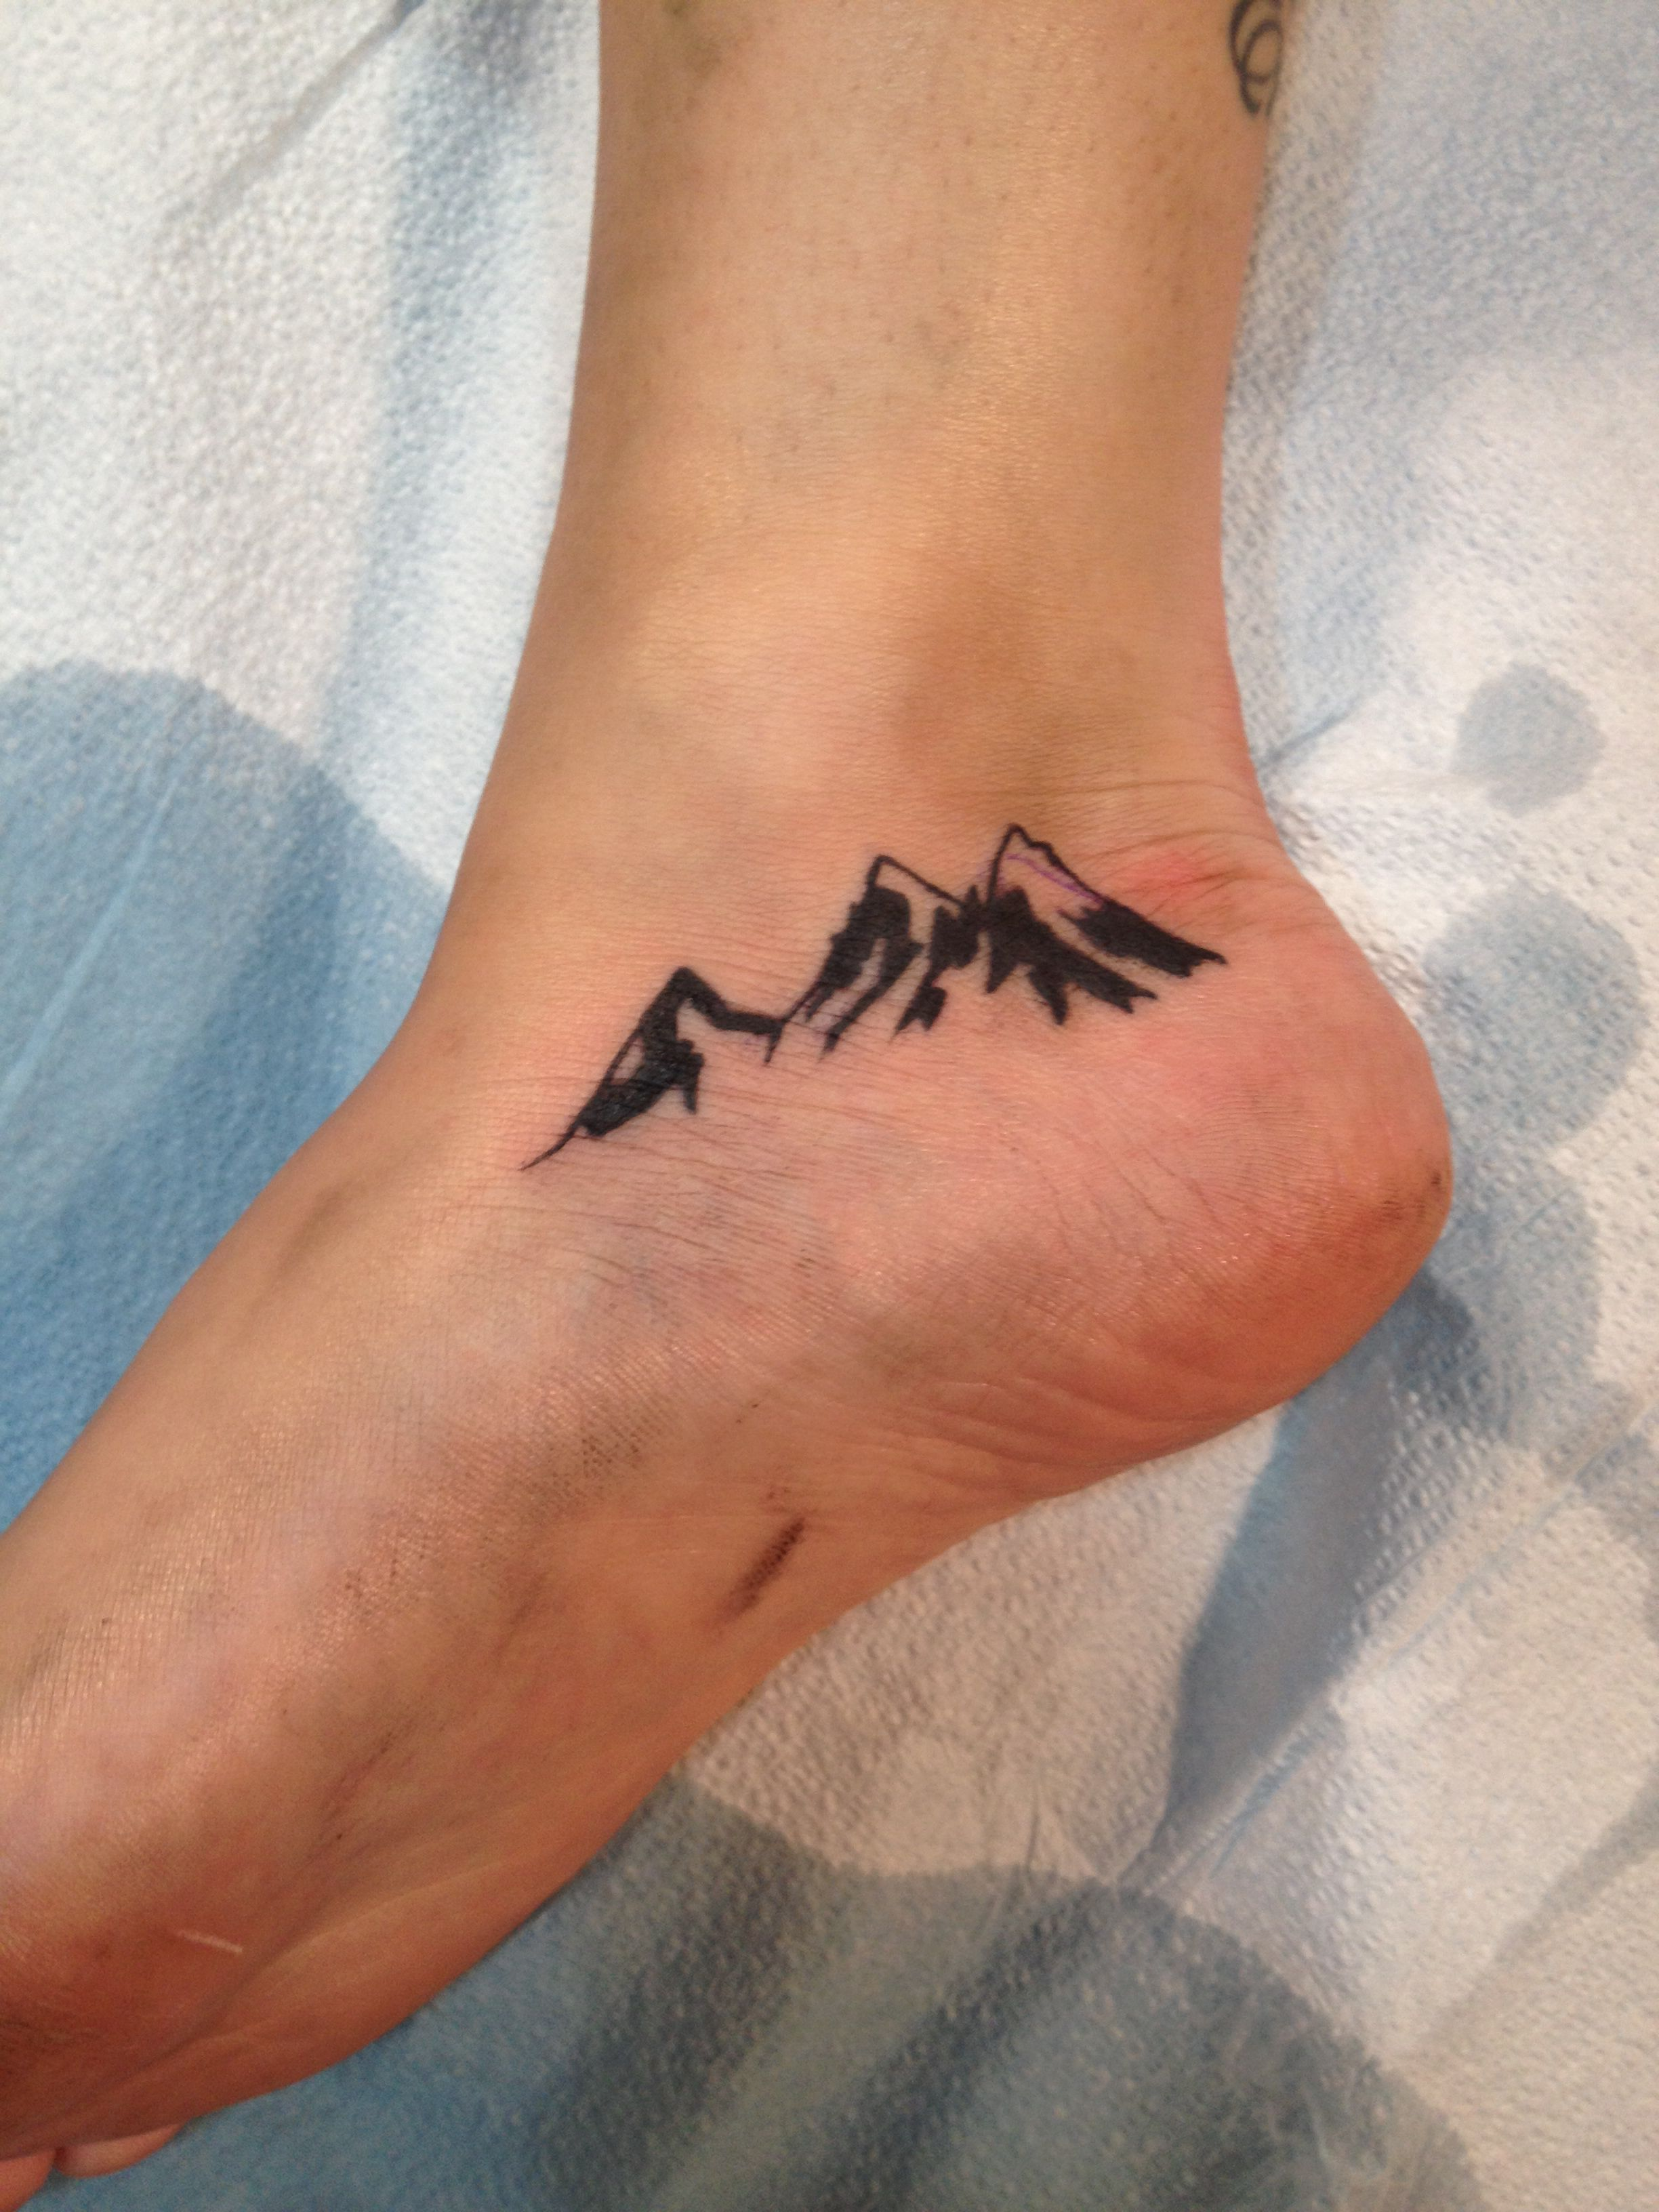 Small Classy Tattoo Ideas: Mountains Tattoo. Canadian Rockies. Simple. Classy